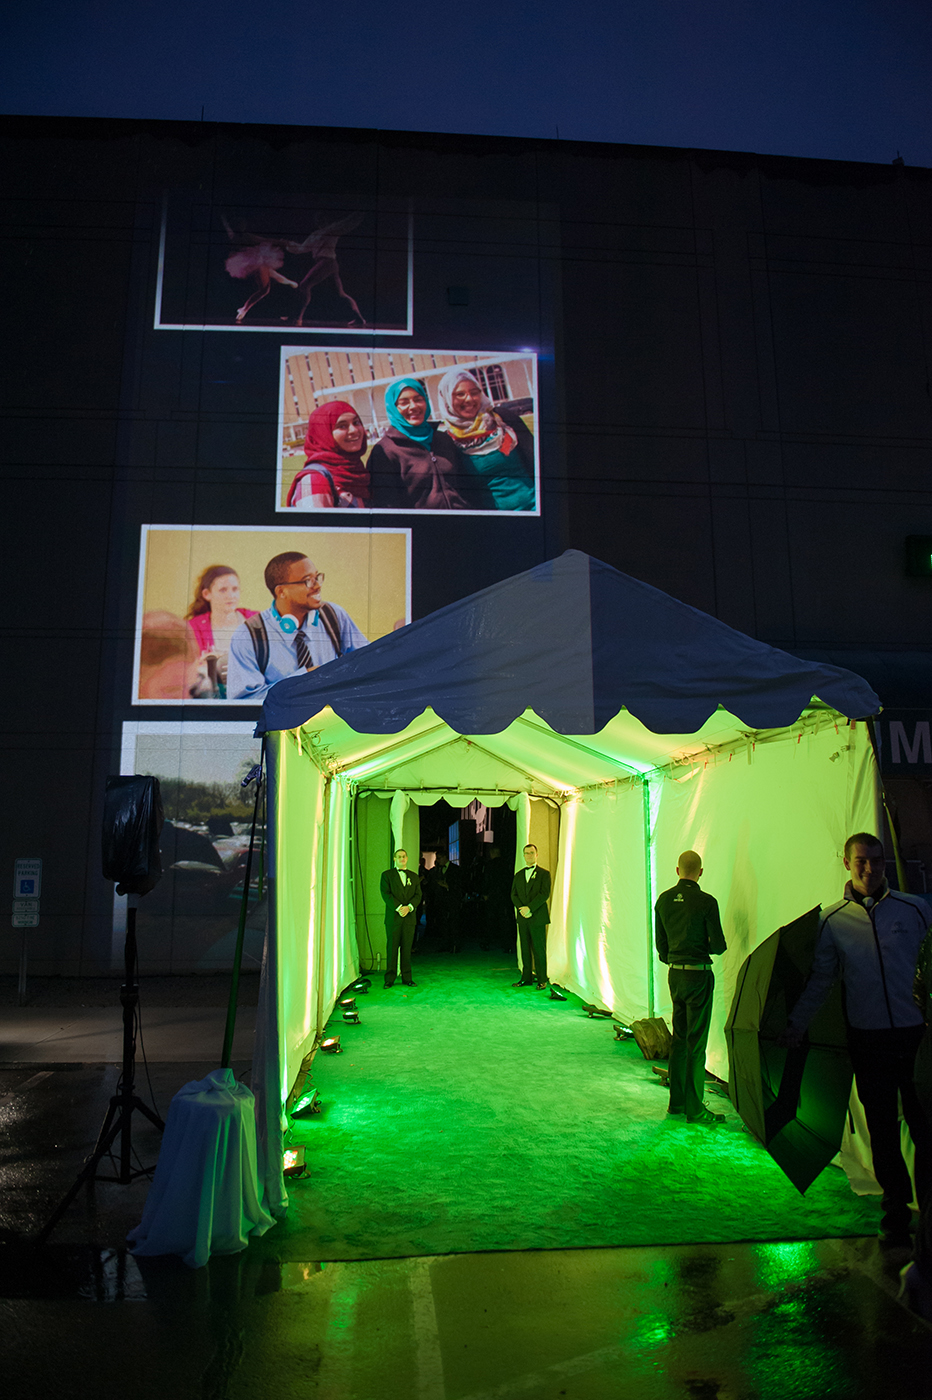 VIP arrival entrance with animated projection.